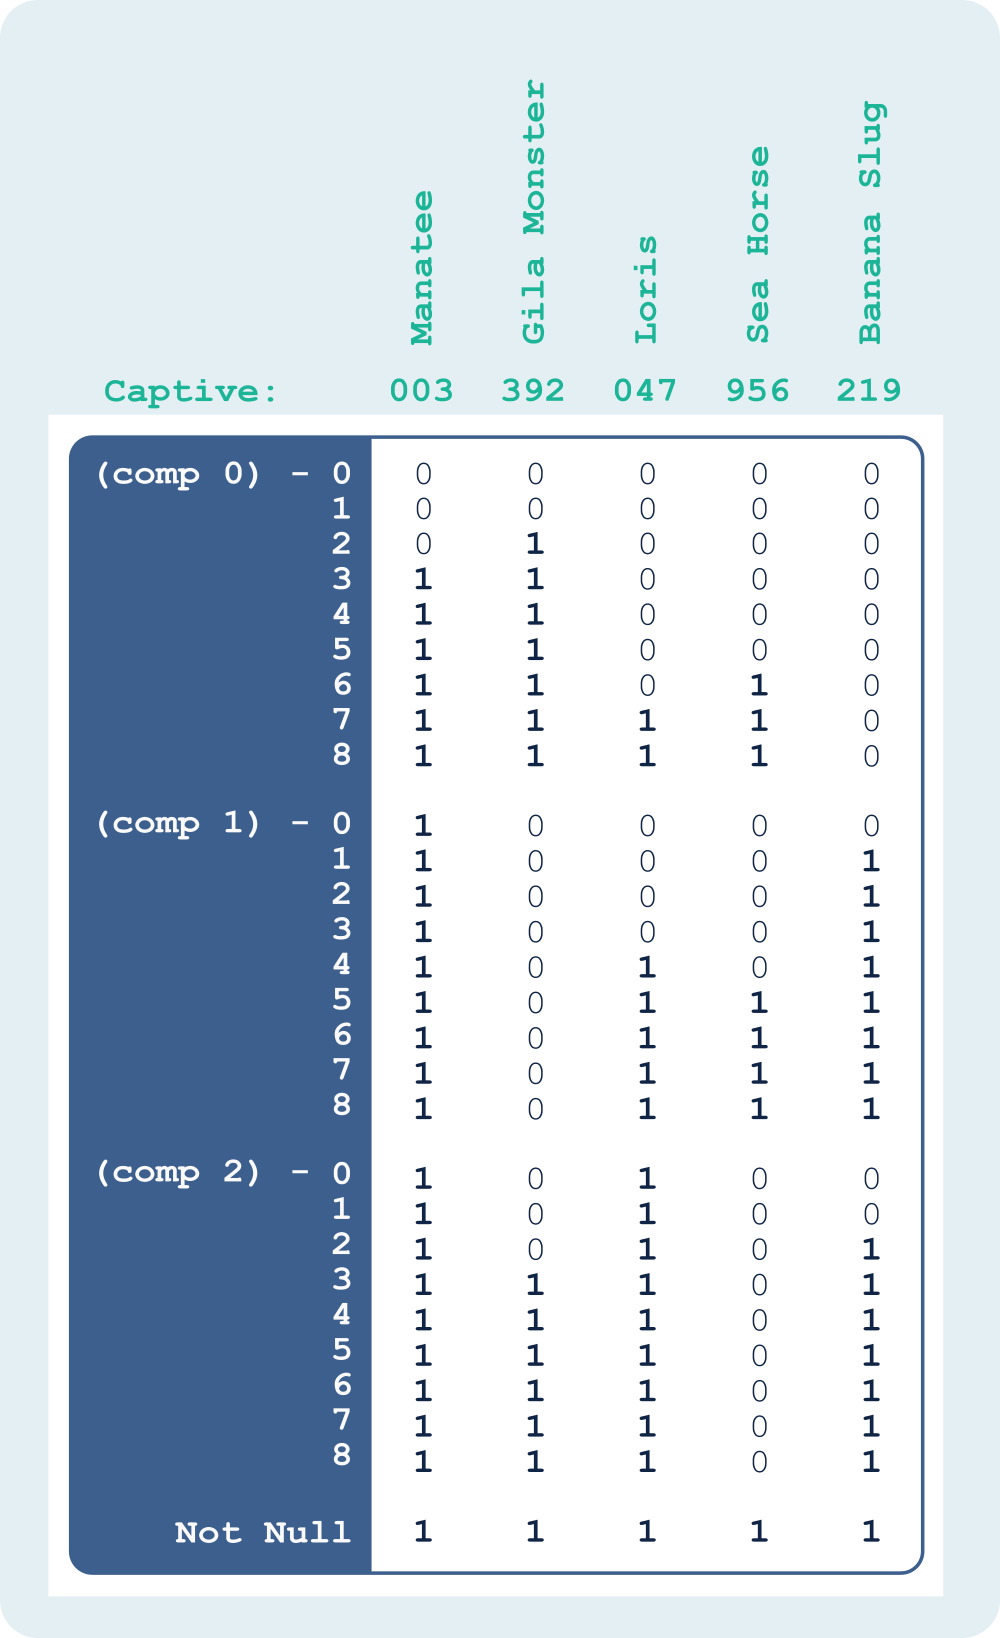 Captivity Counts as a Range-Encoded, Base-10, Bit-sliced Index with Not-Null